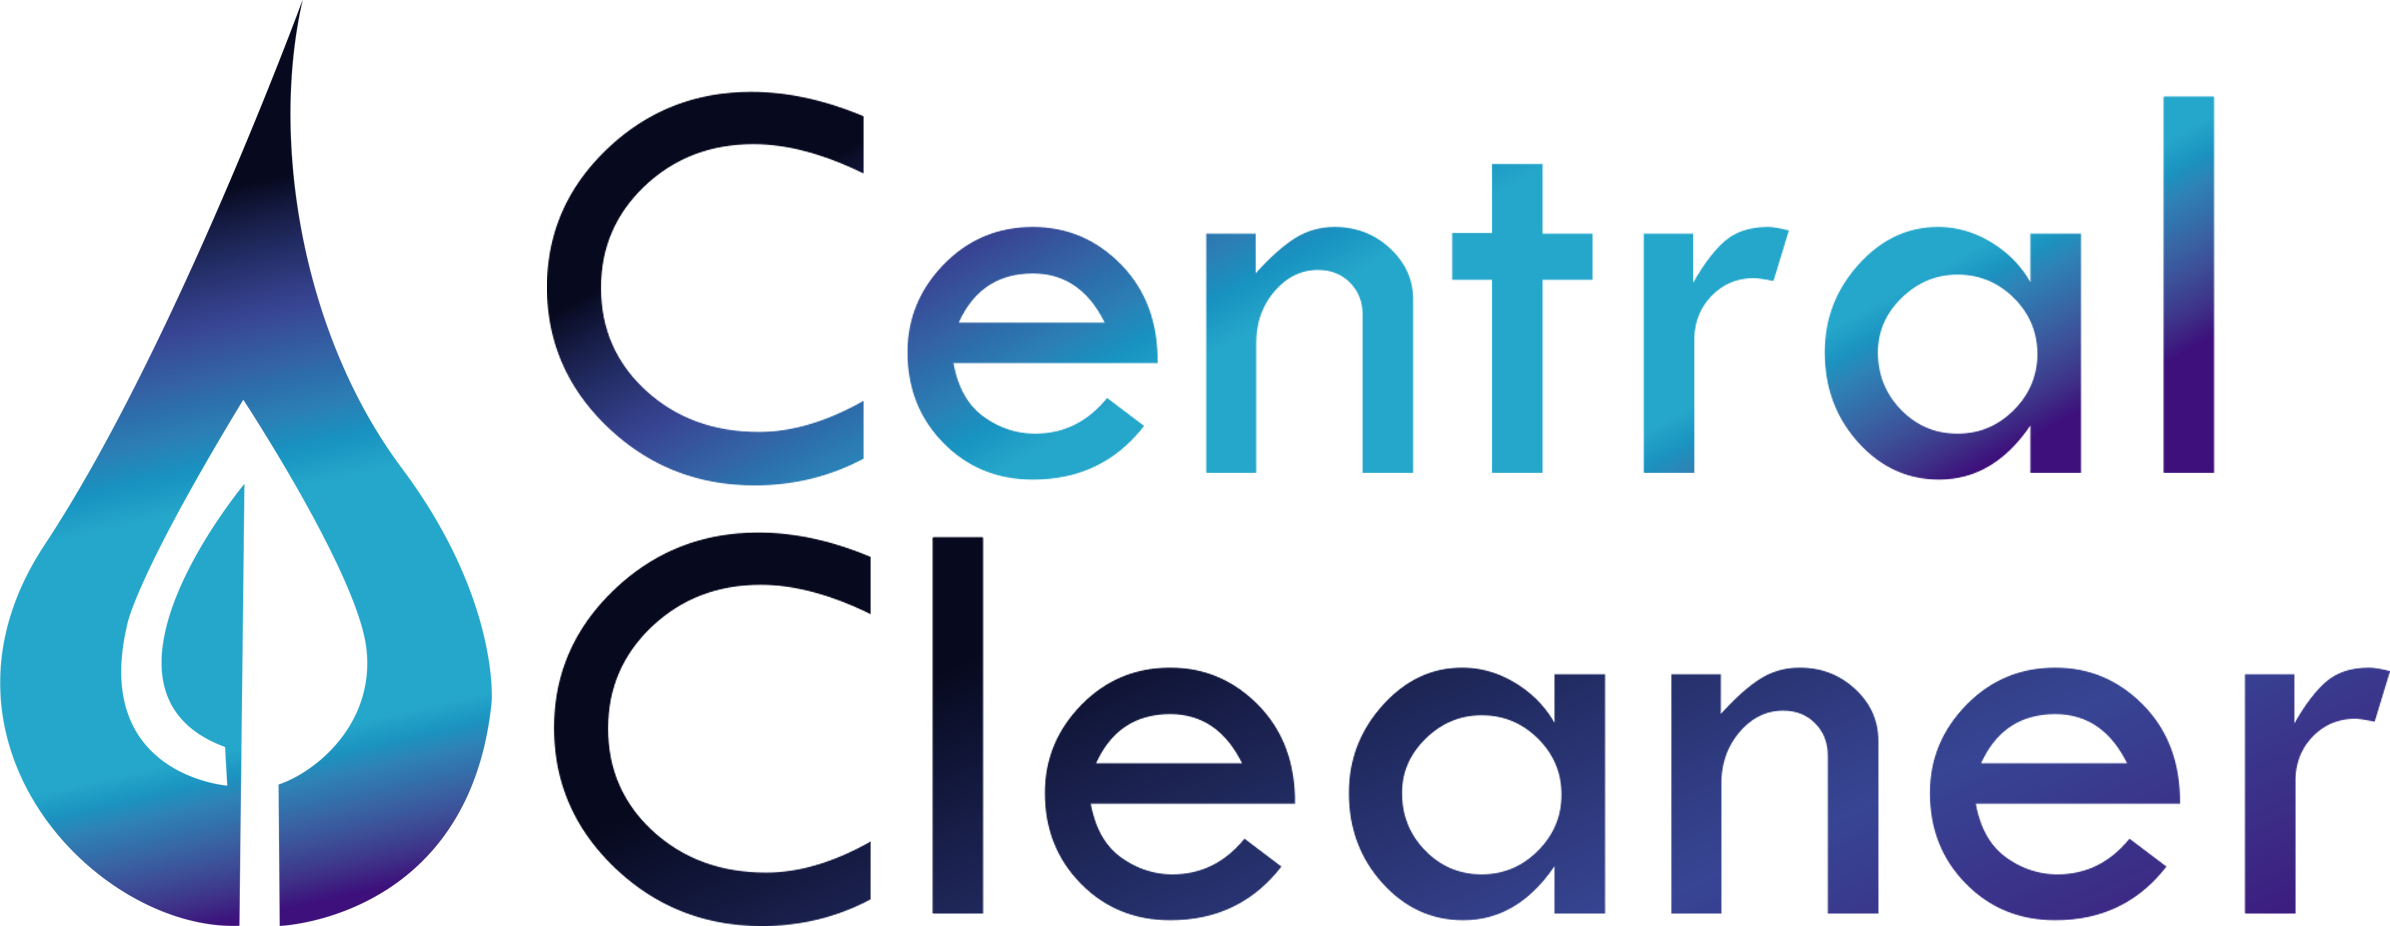 Central Cleaner